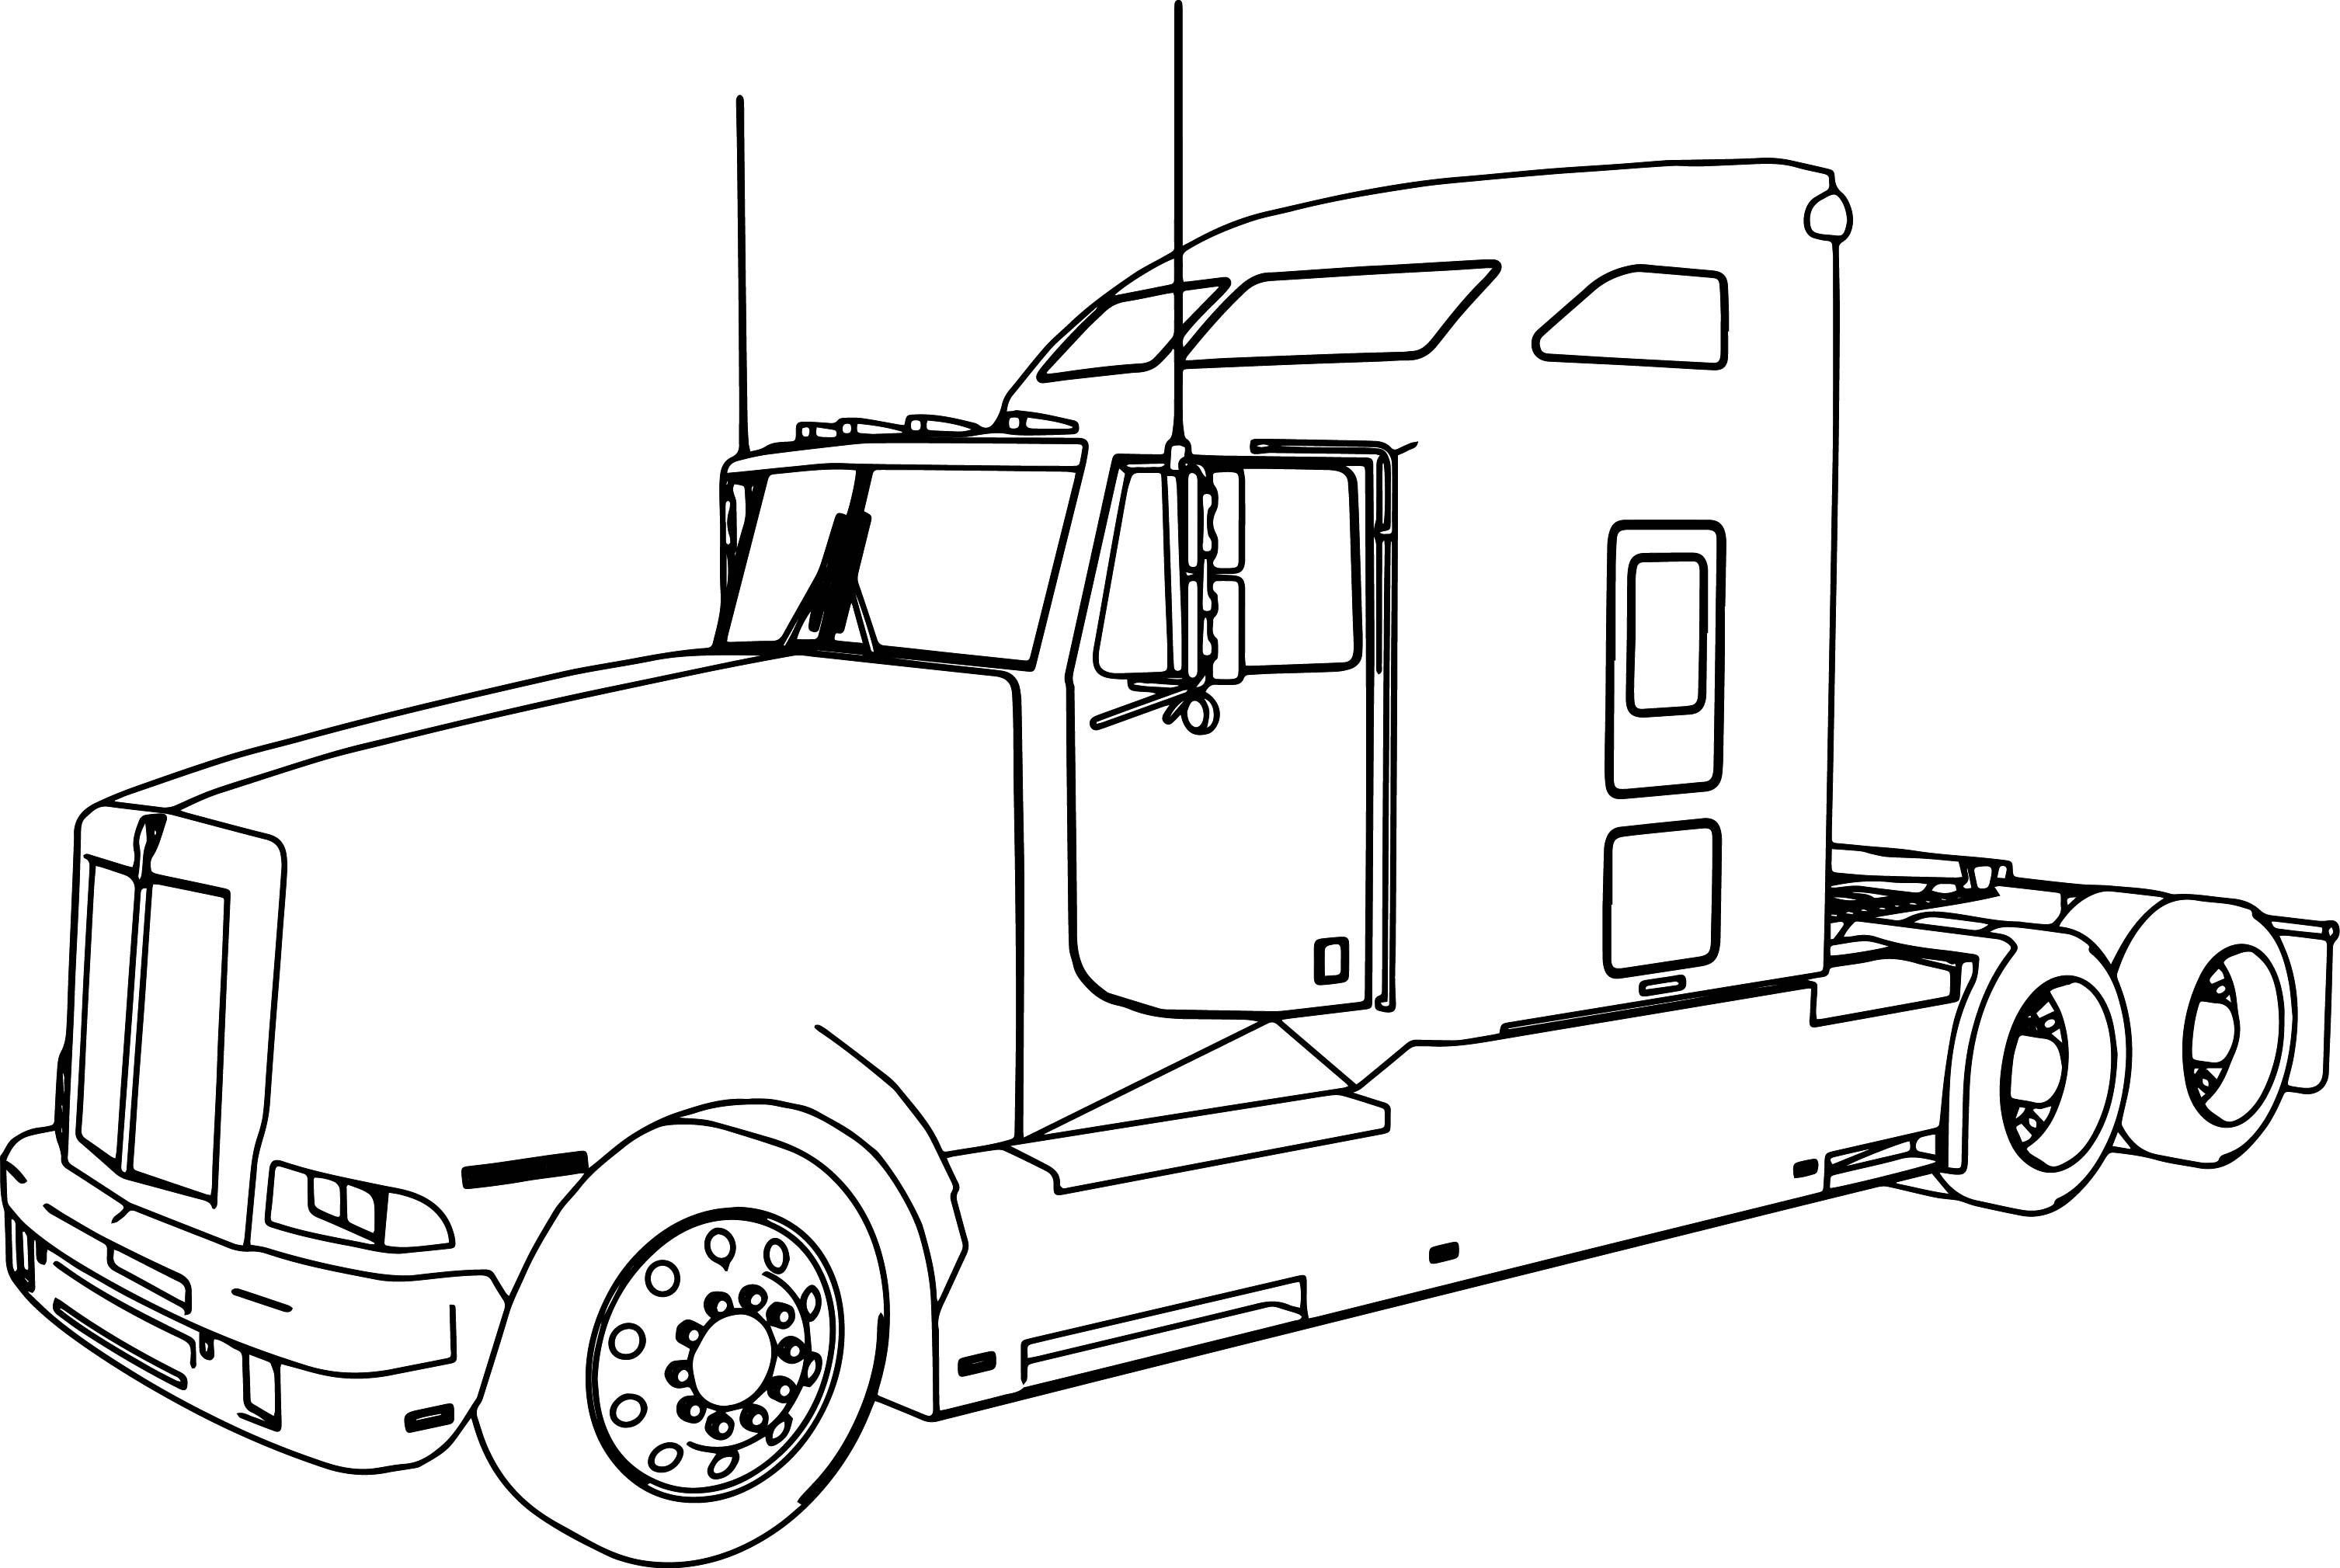 kenworth truck coloring pages powerful kenworth dump truck coloring page kids play truck coloring kenworth pages